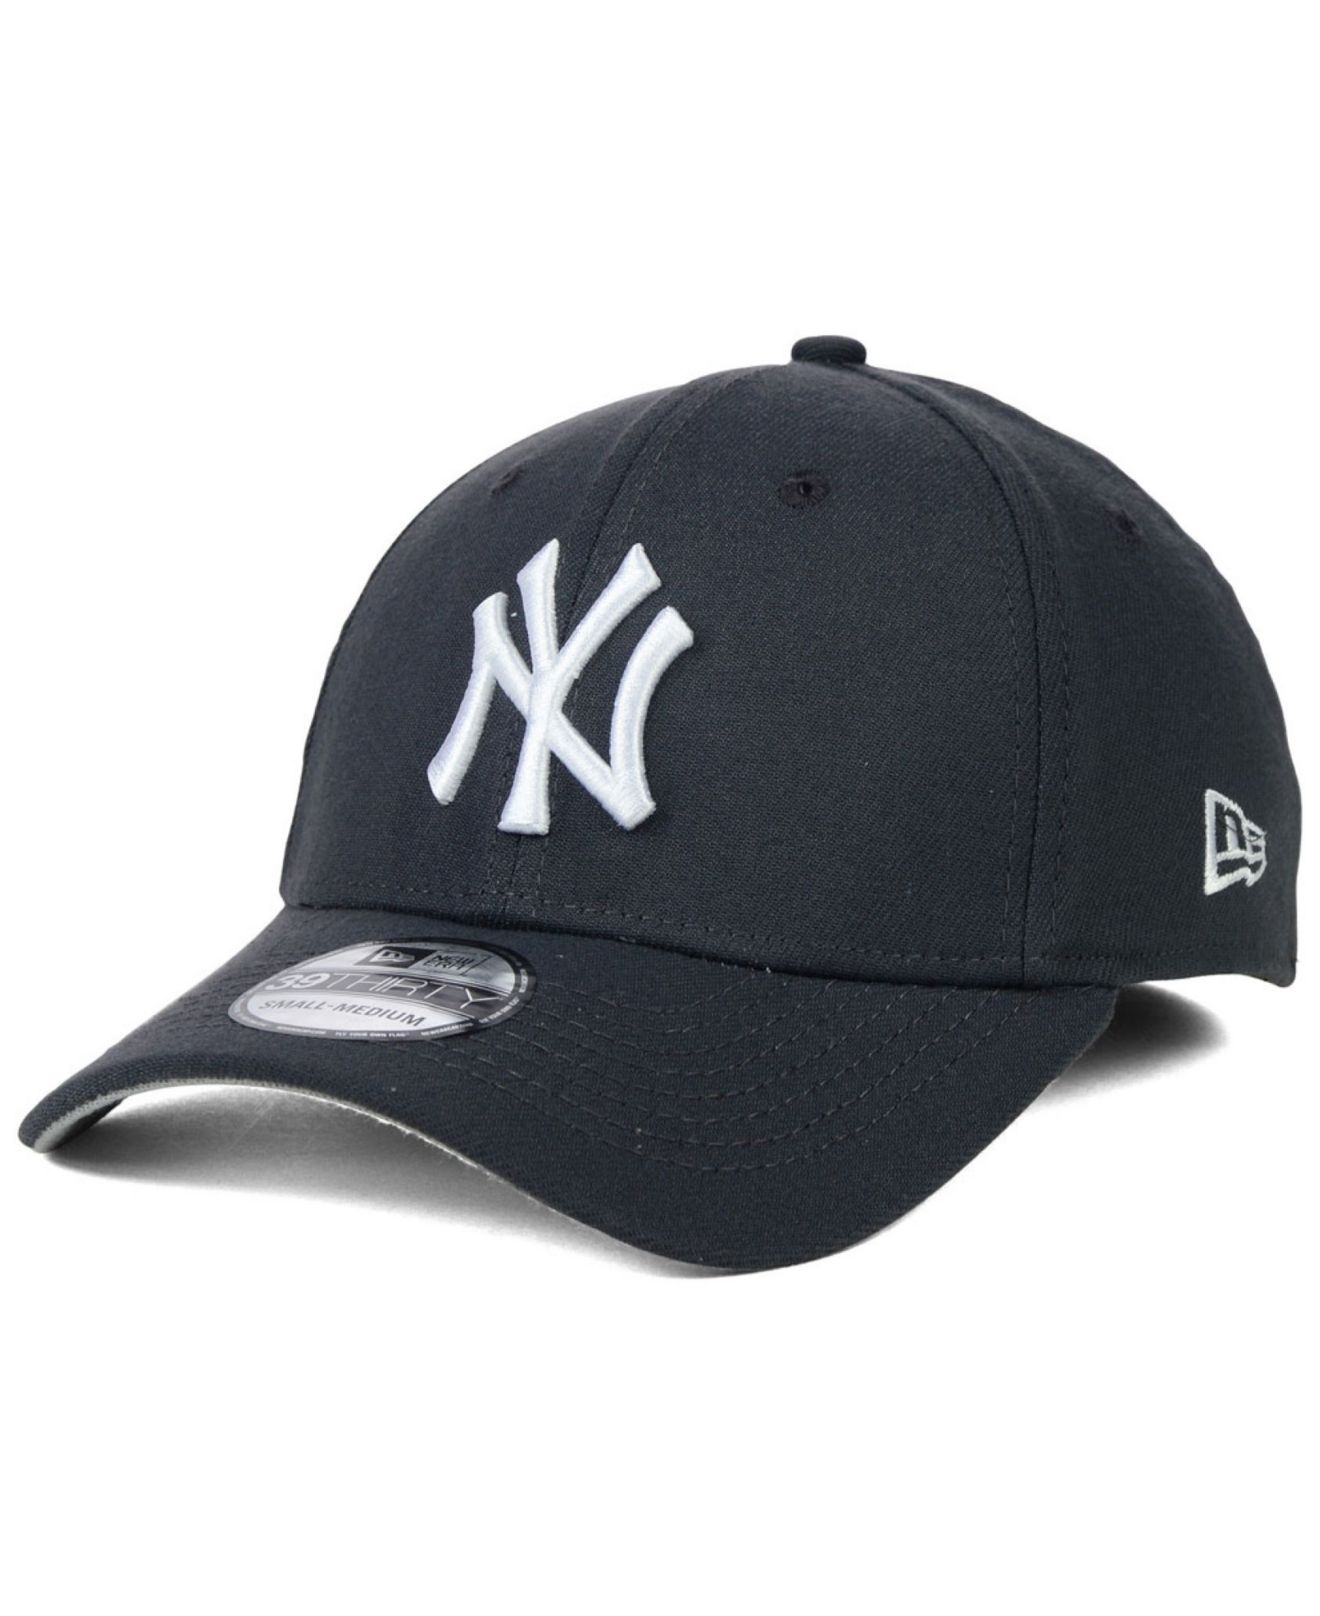 ktz new york yankees fashion 39thirty cap in gray for men. Black Bedroom Furniture Sets. Home Design Ideas